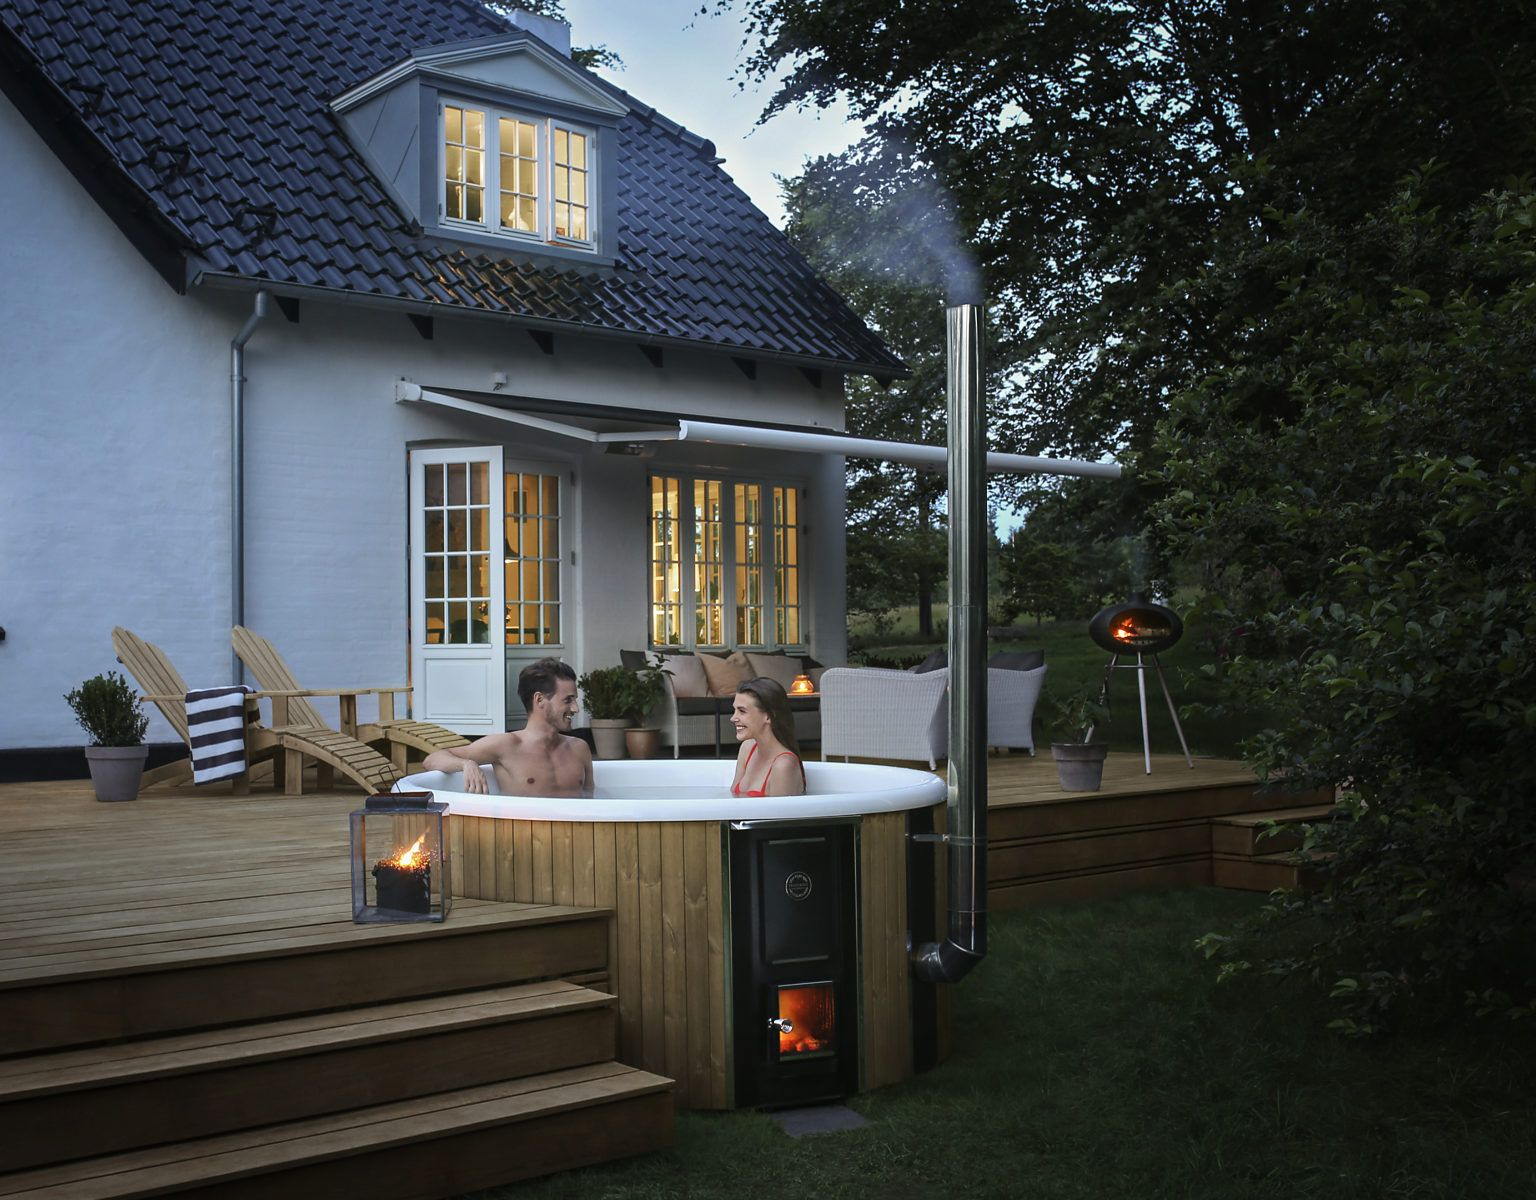 Bring the premium woodfired experience to your garden